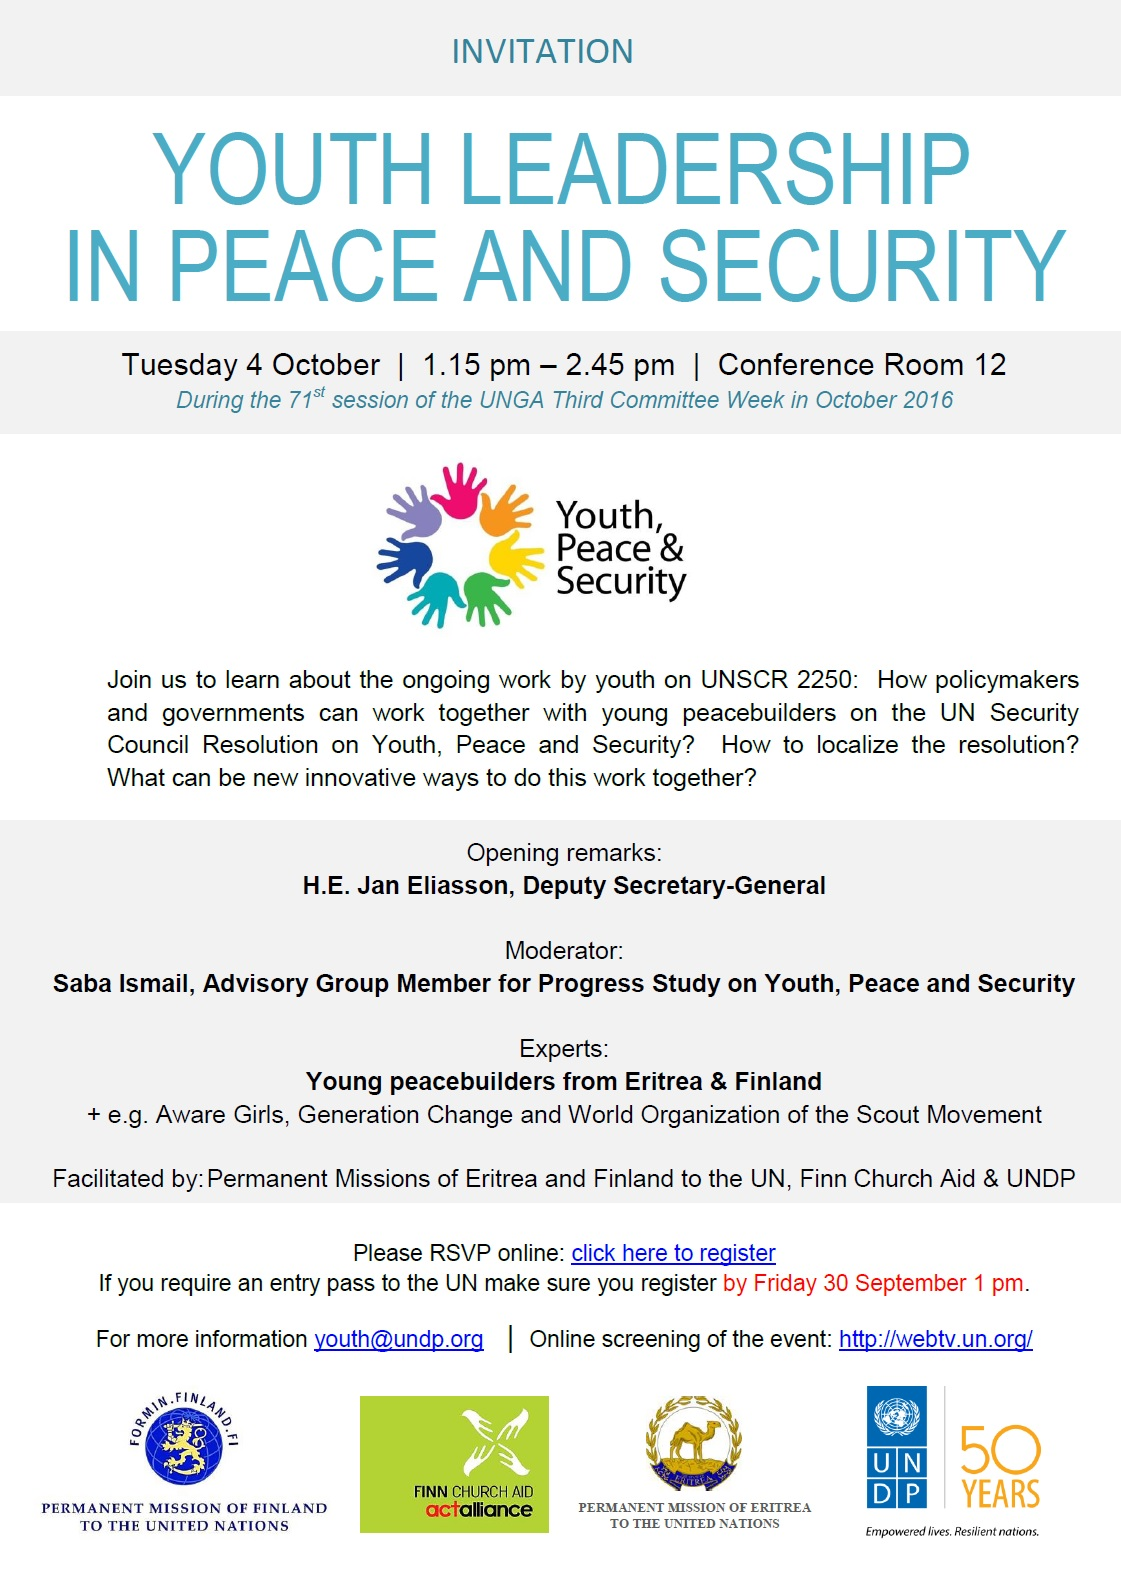 2016.10.04 - Invitation - Youth Leadership in Peace and Security